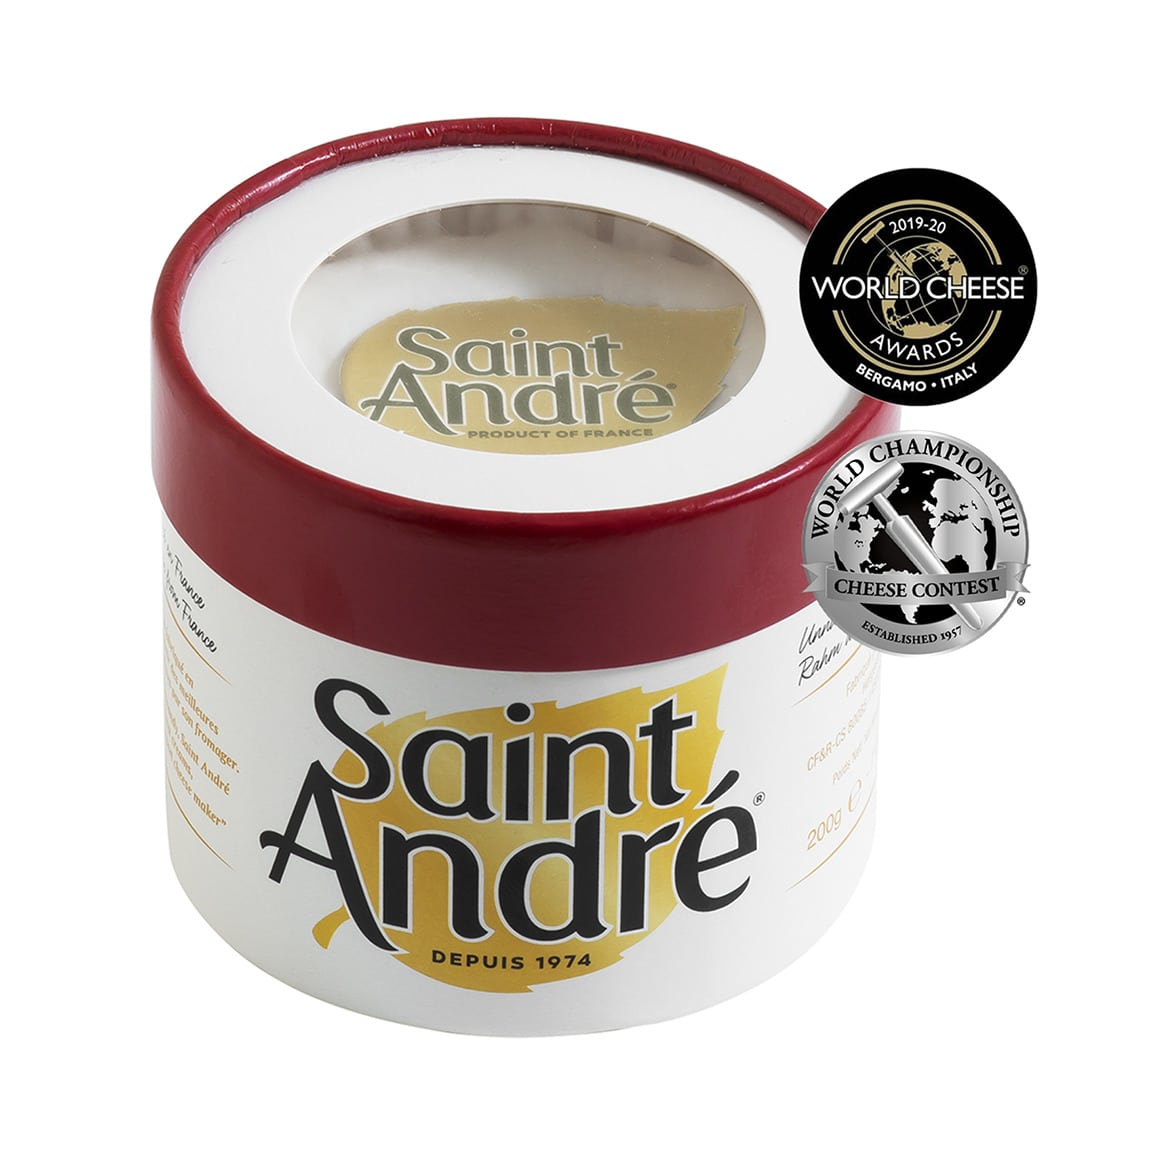 Saint André heavenly Triple Crème cheese packaging and medals